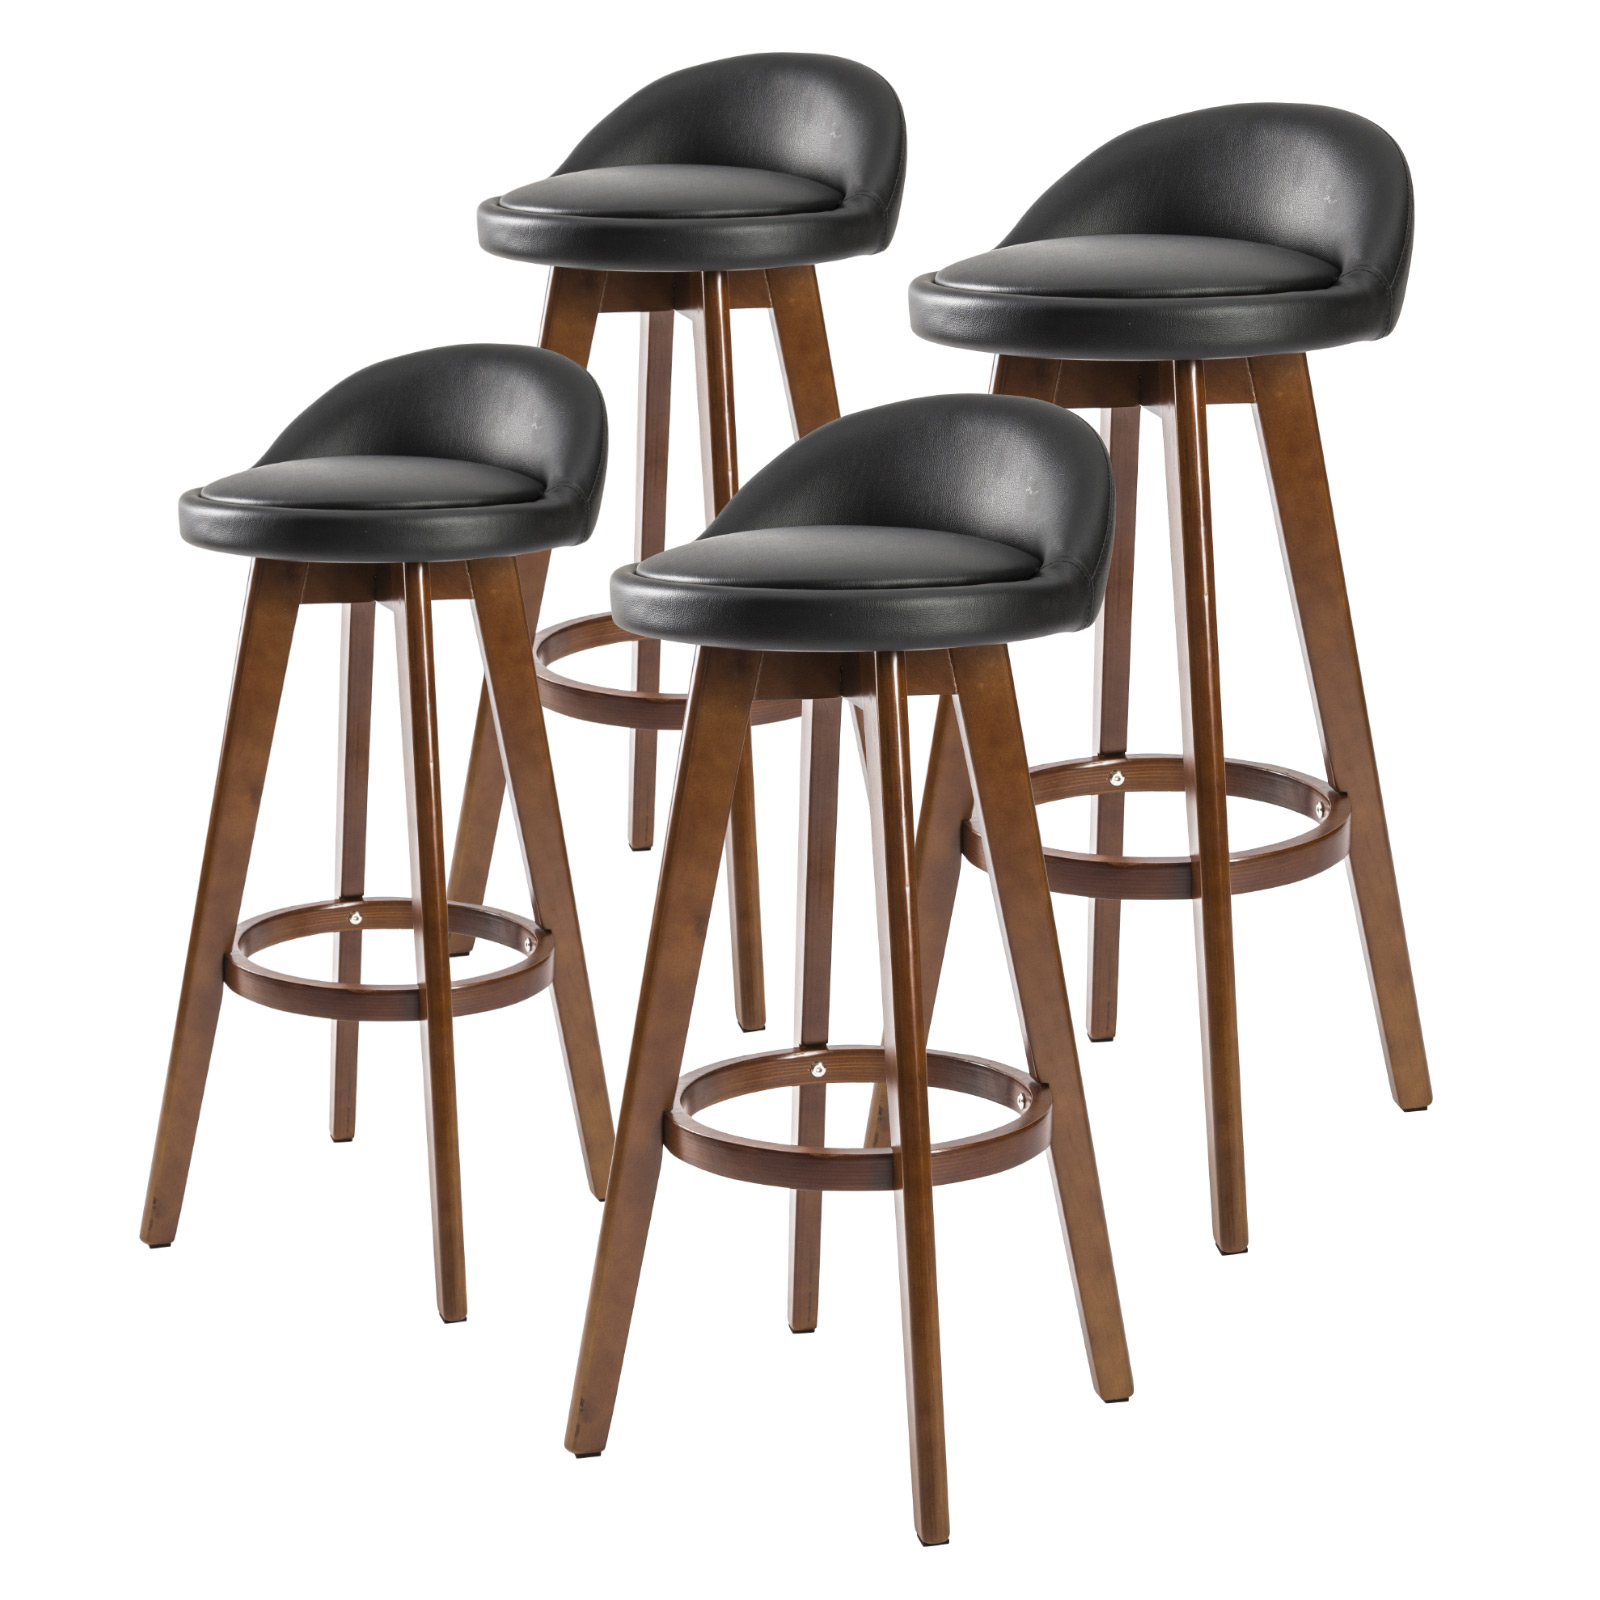 4X 72cm Oak Wood Bar Stool Leather LEILA - BLACK BROWN